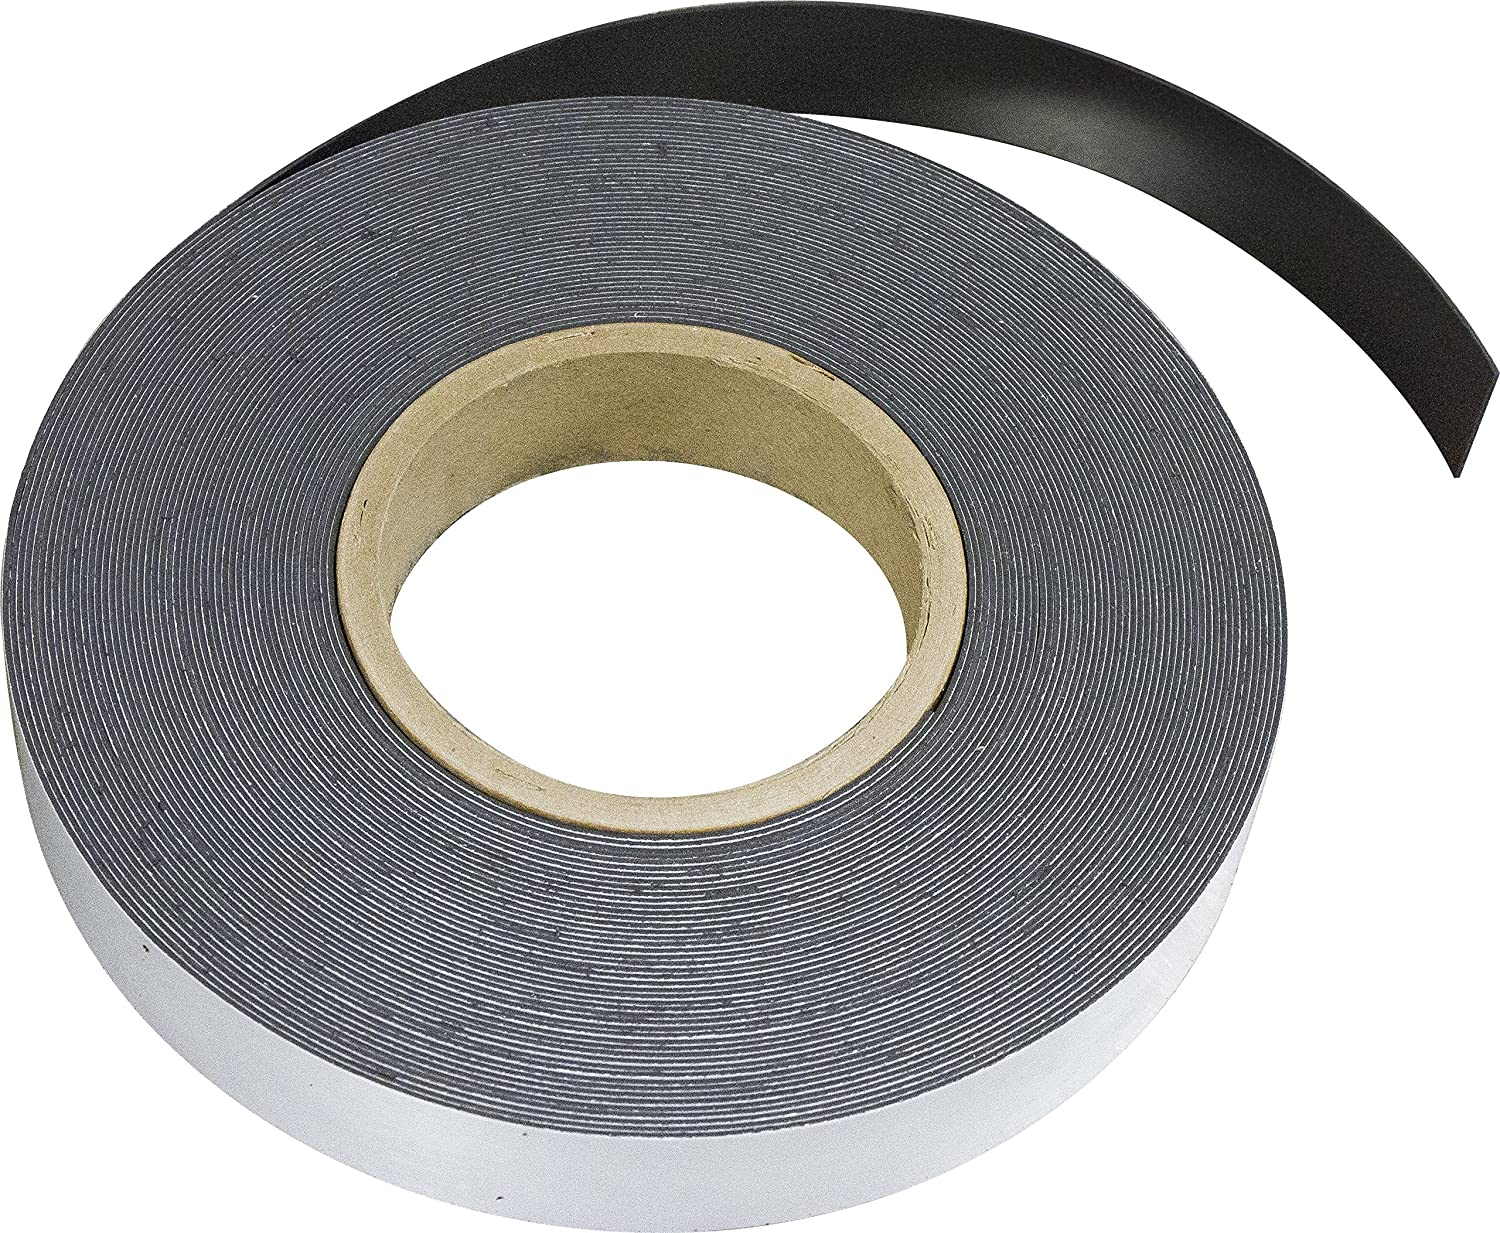 MAG-MATE MRA030X0100X100 Flexible Magnet Popular overseas OFFicial site with Material Adhesive